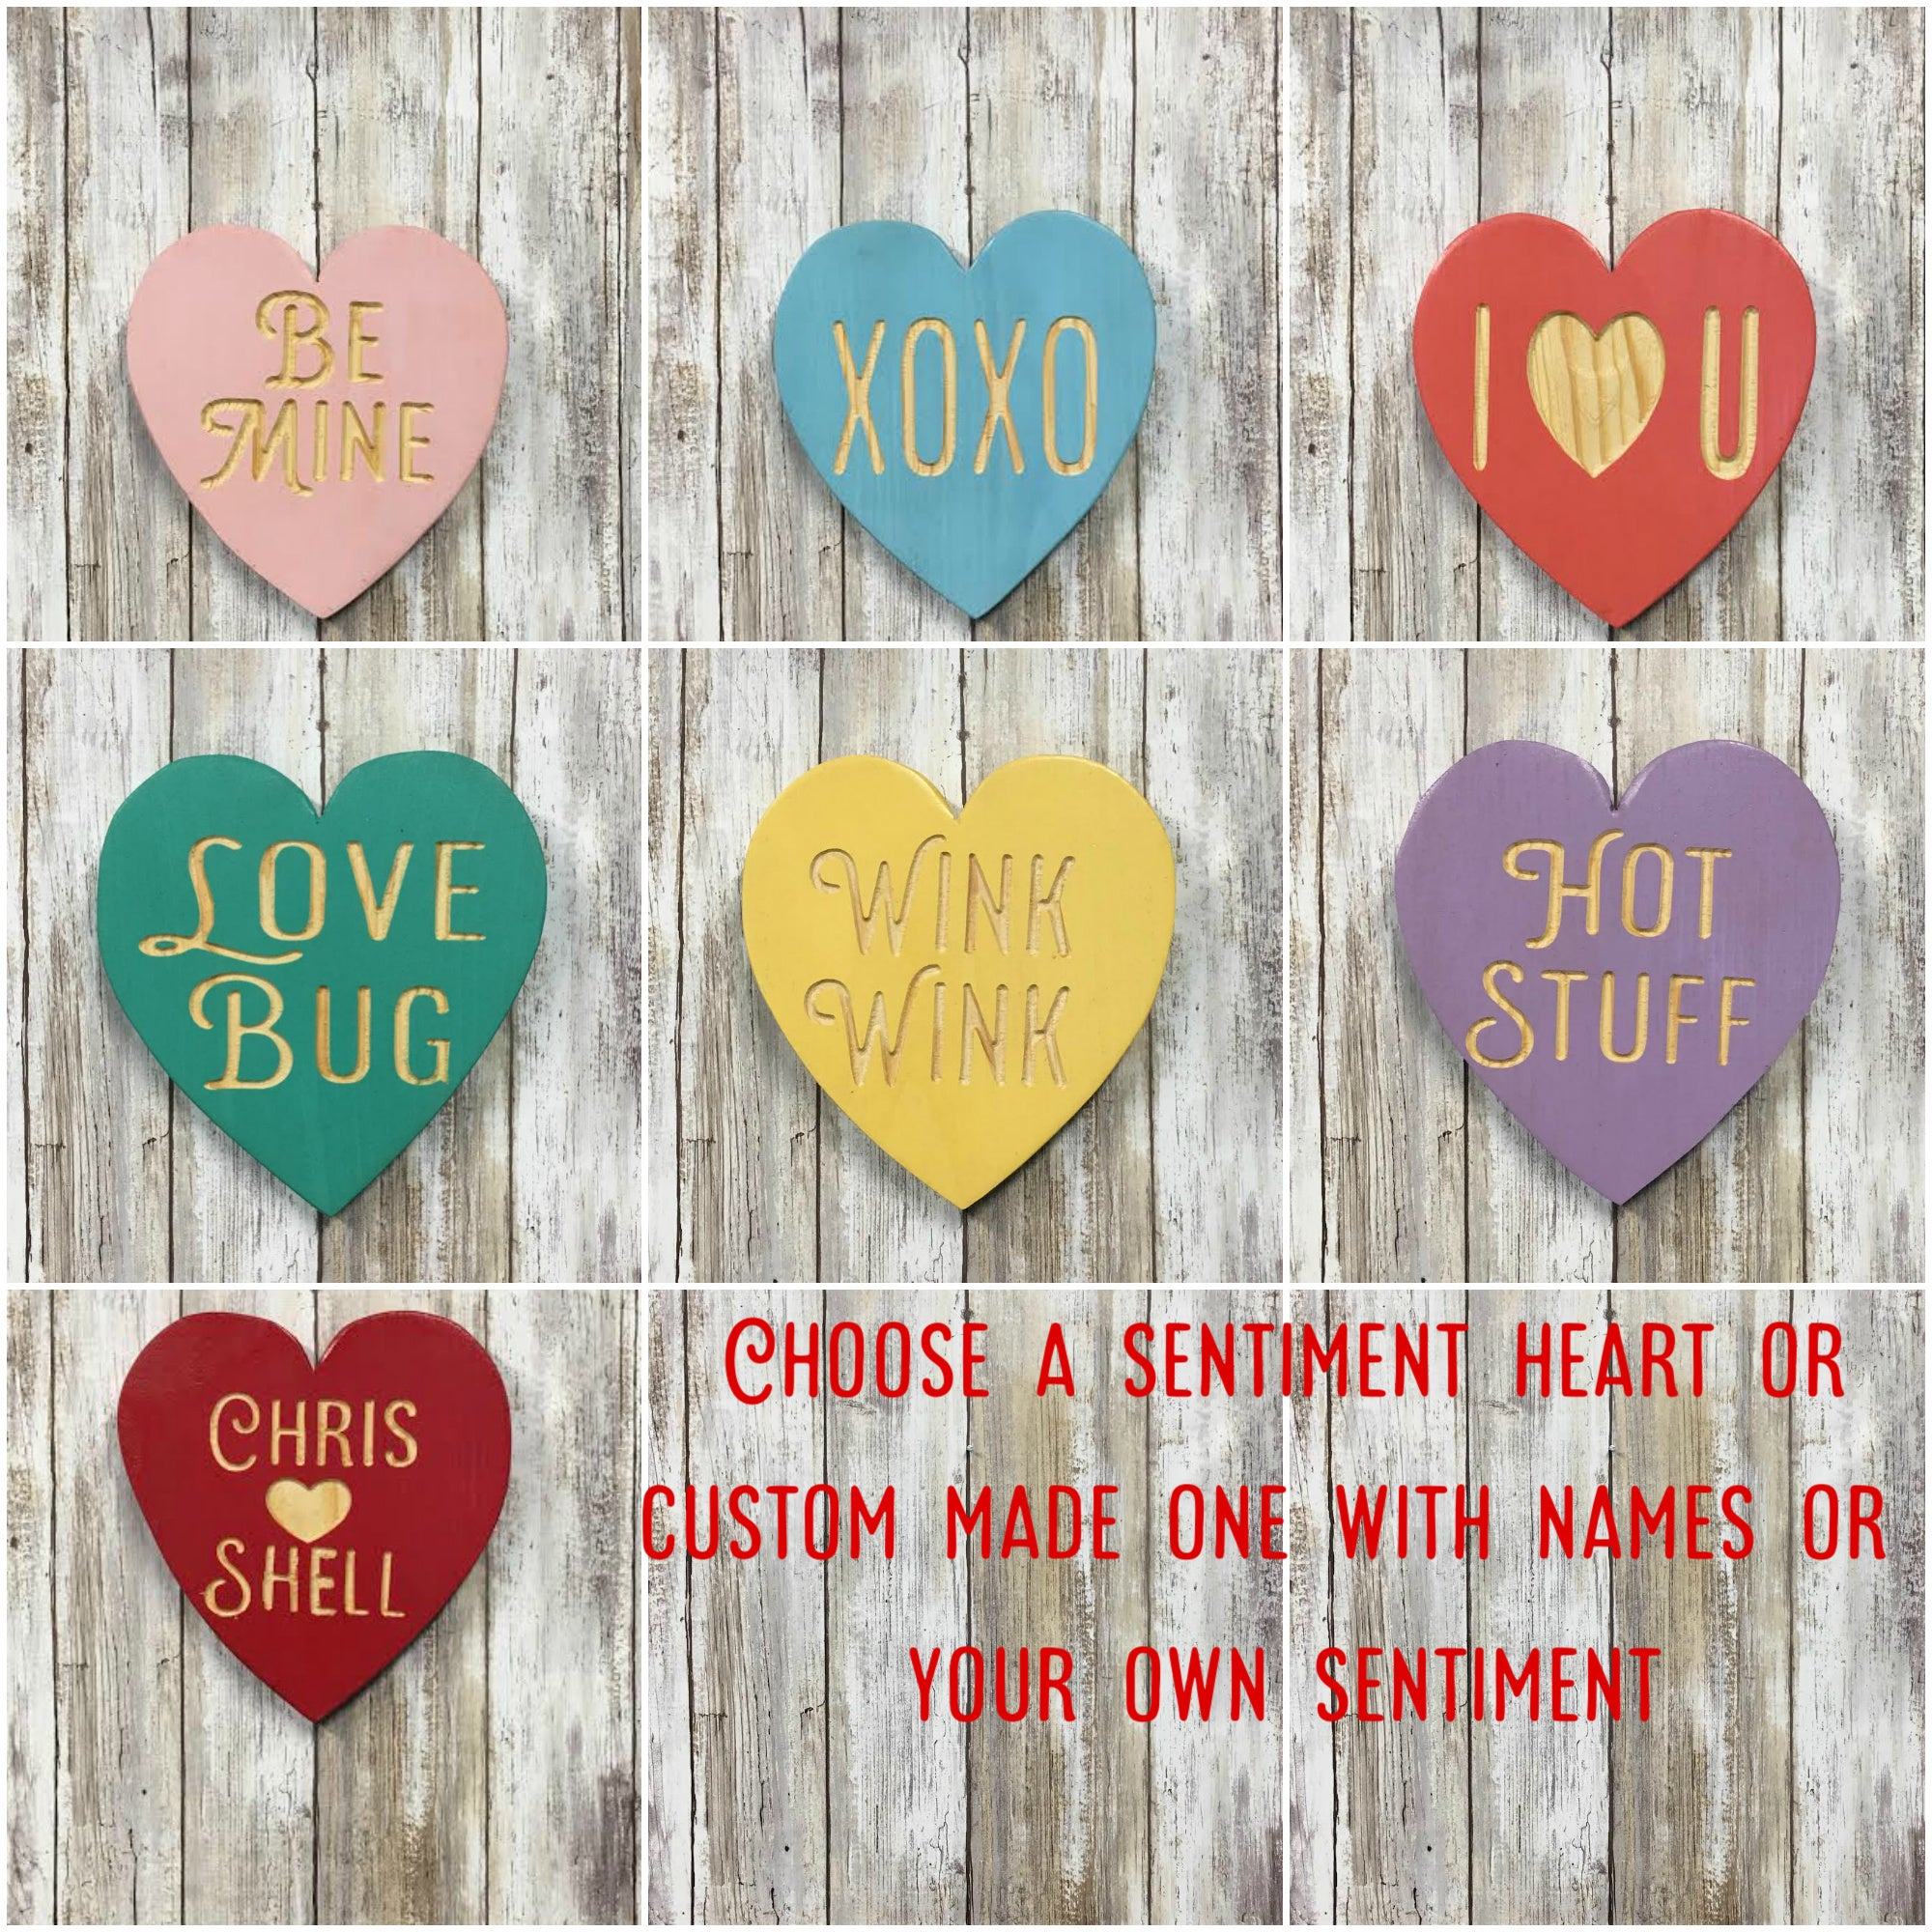 Valentines Day Conversation Heart Signs - Home Decor - Engraved Pine Wood